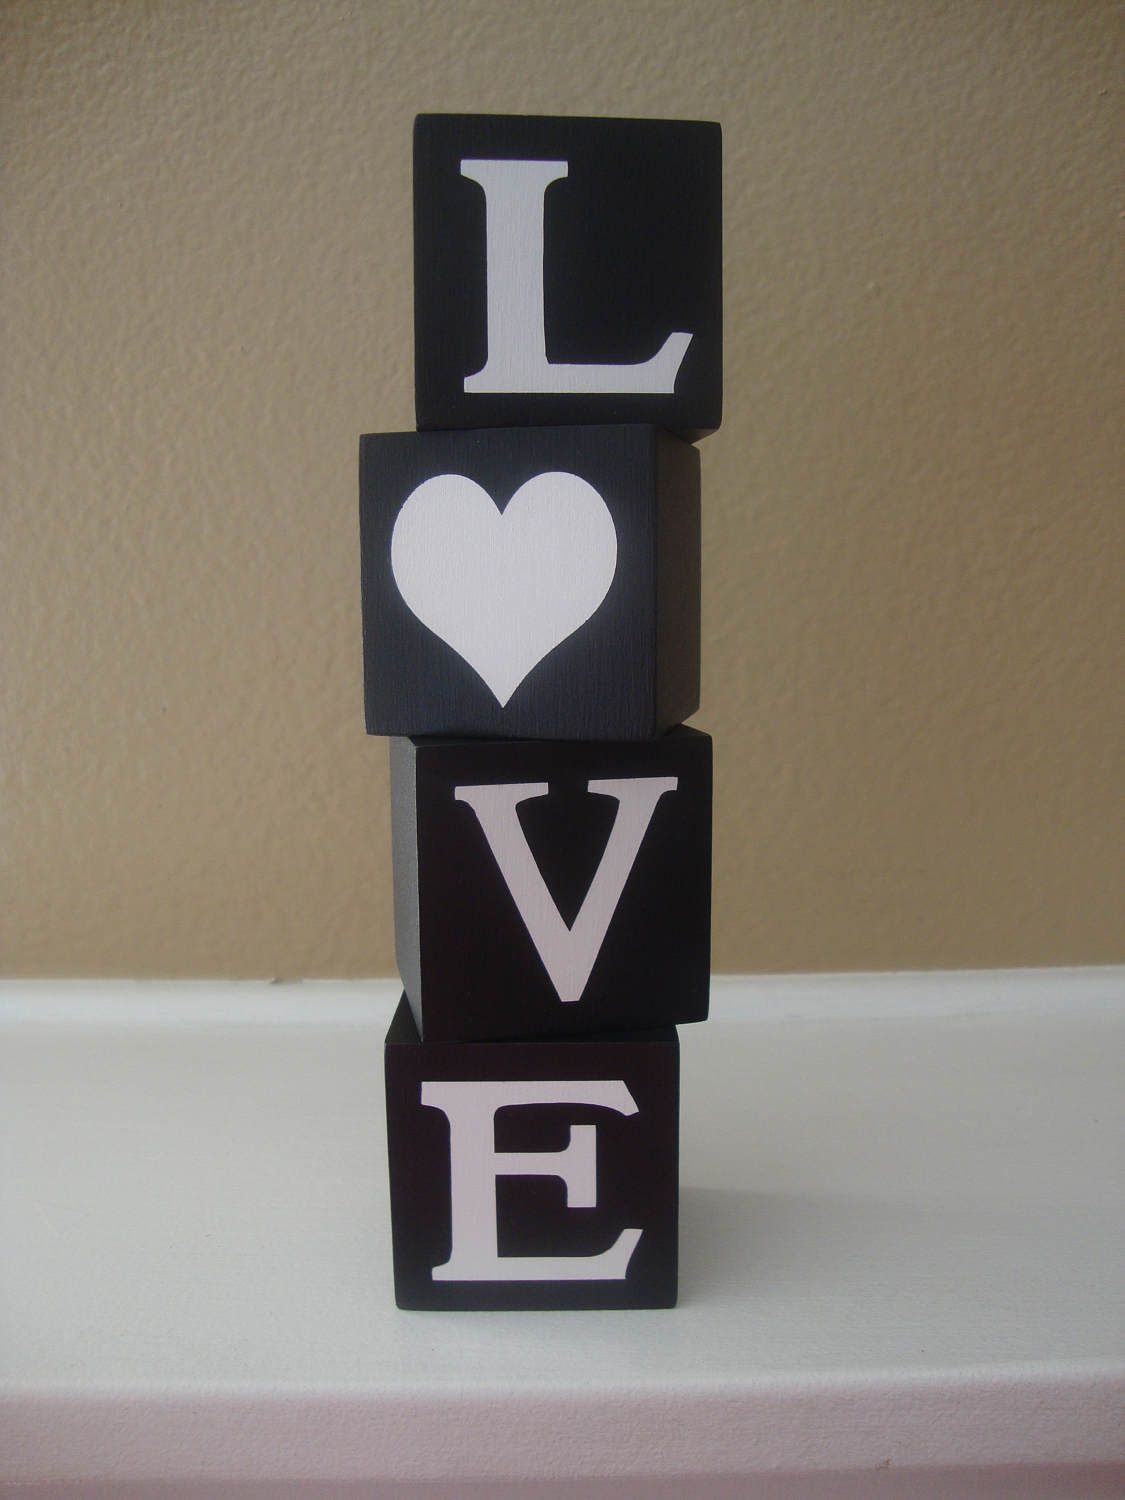 Love Wooden Letter Blocks For Home Decor And Decorating Valentines Day Wood